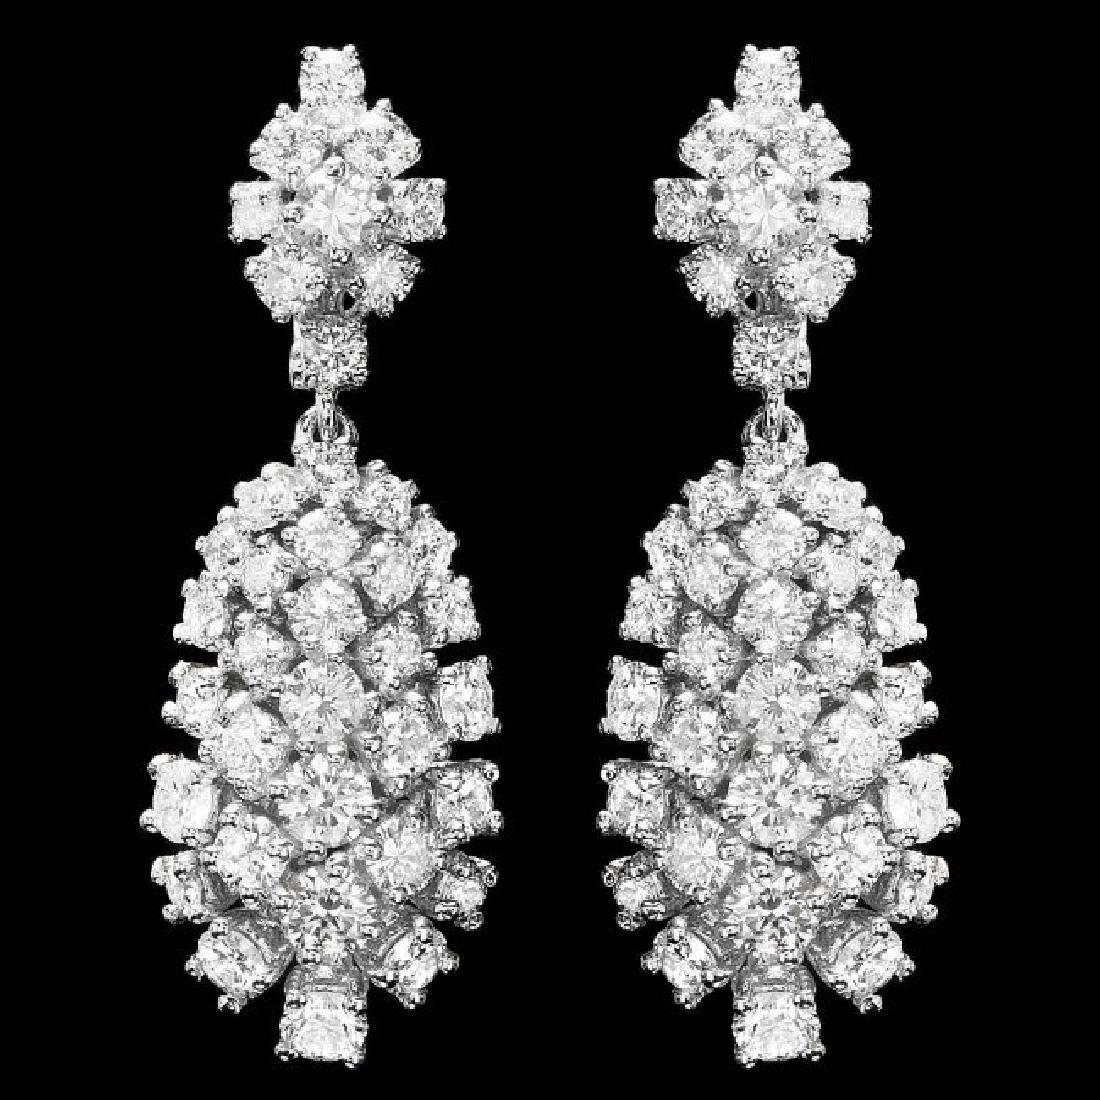 14k Gold 5.32ct Diamond Earrings